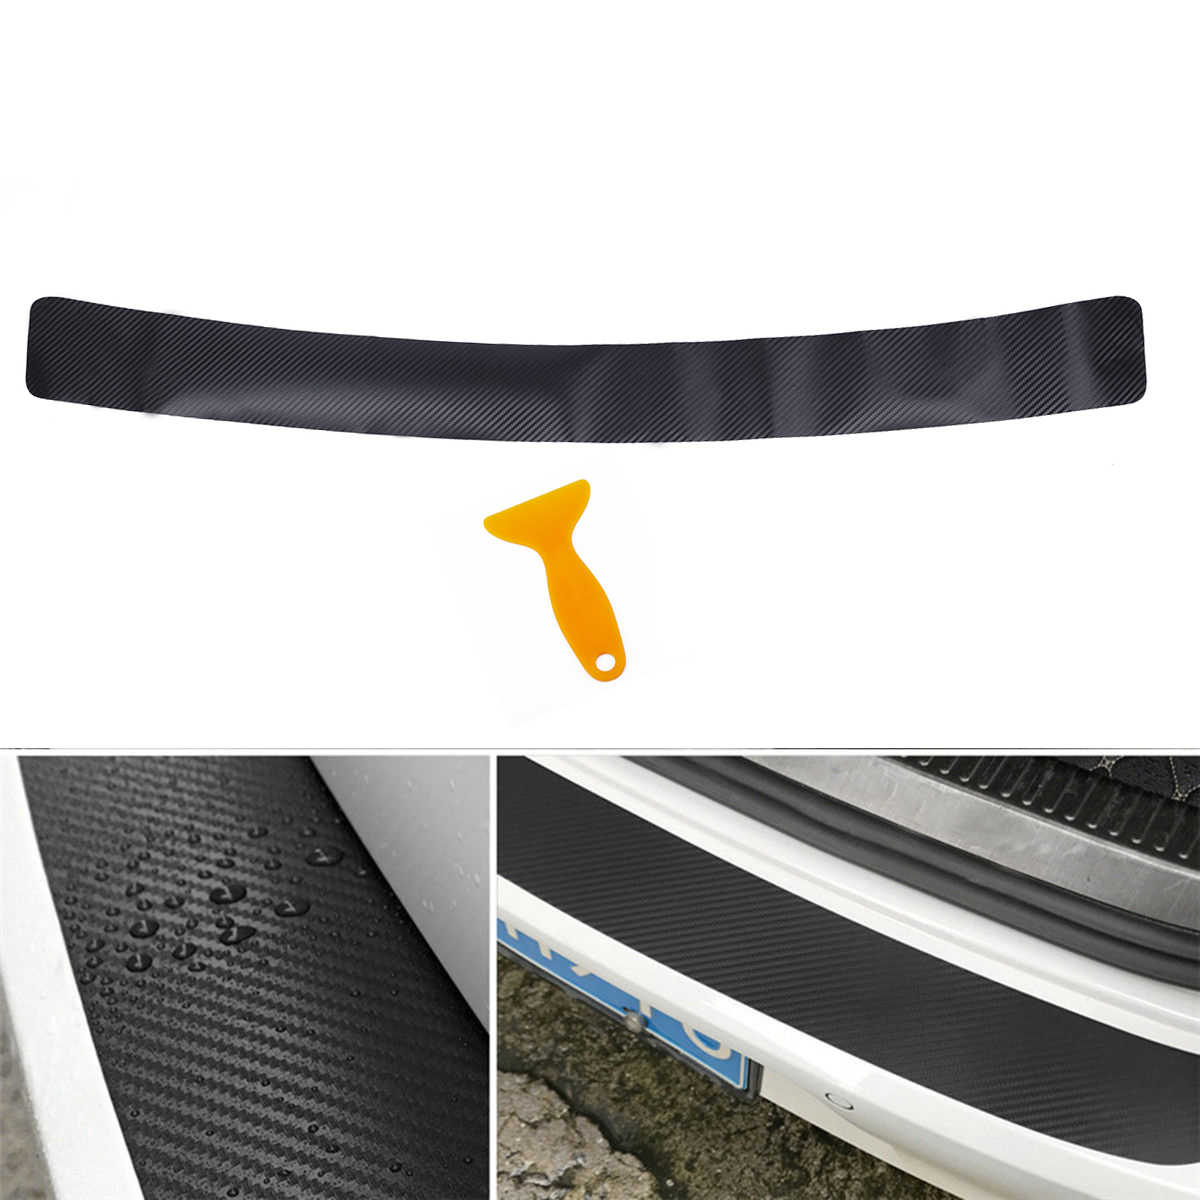 Car Styling Rear Trunk Carbon Fiber Protection Sticker For BMW E46 E90 E60 E36 F20 X5 Ford Focus 2 3 1 Peugeot 206 307 308 Saab